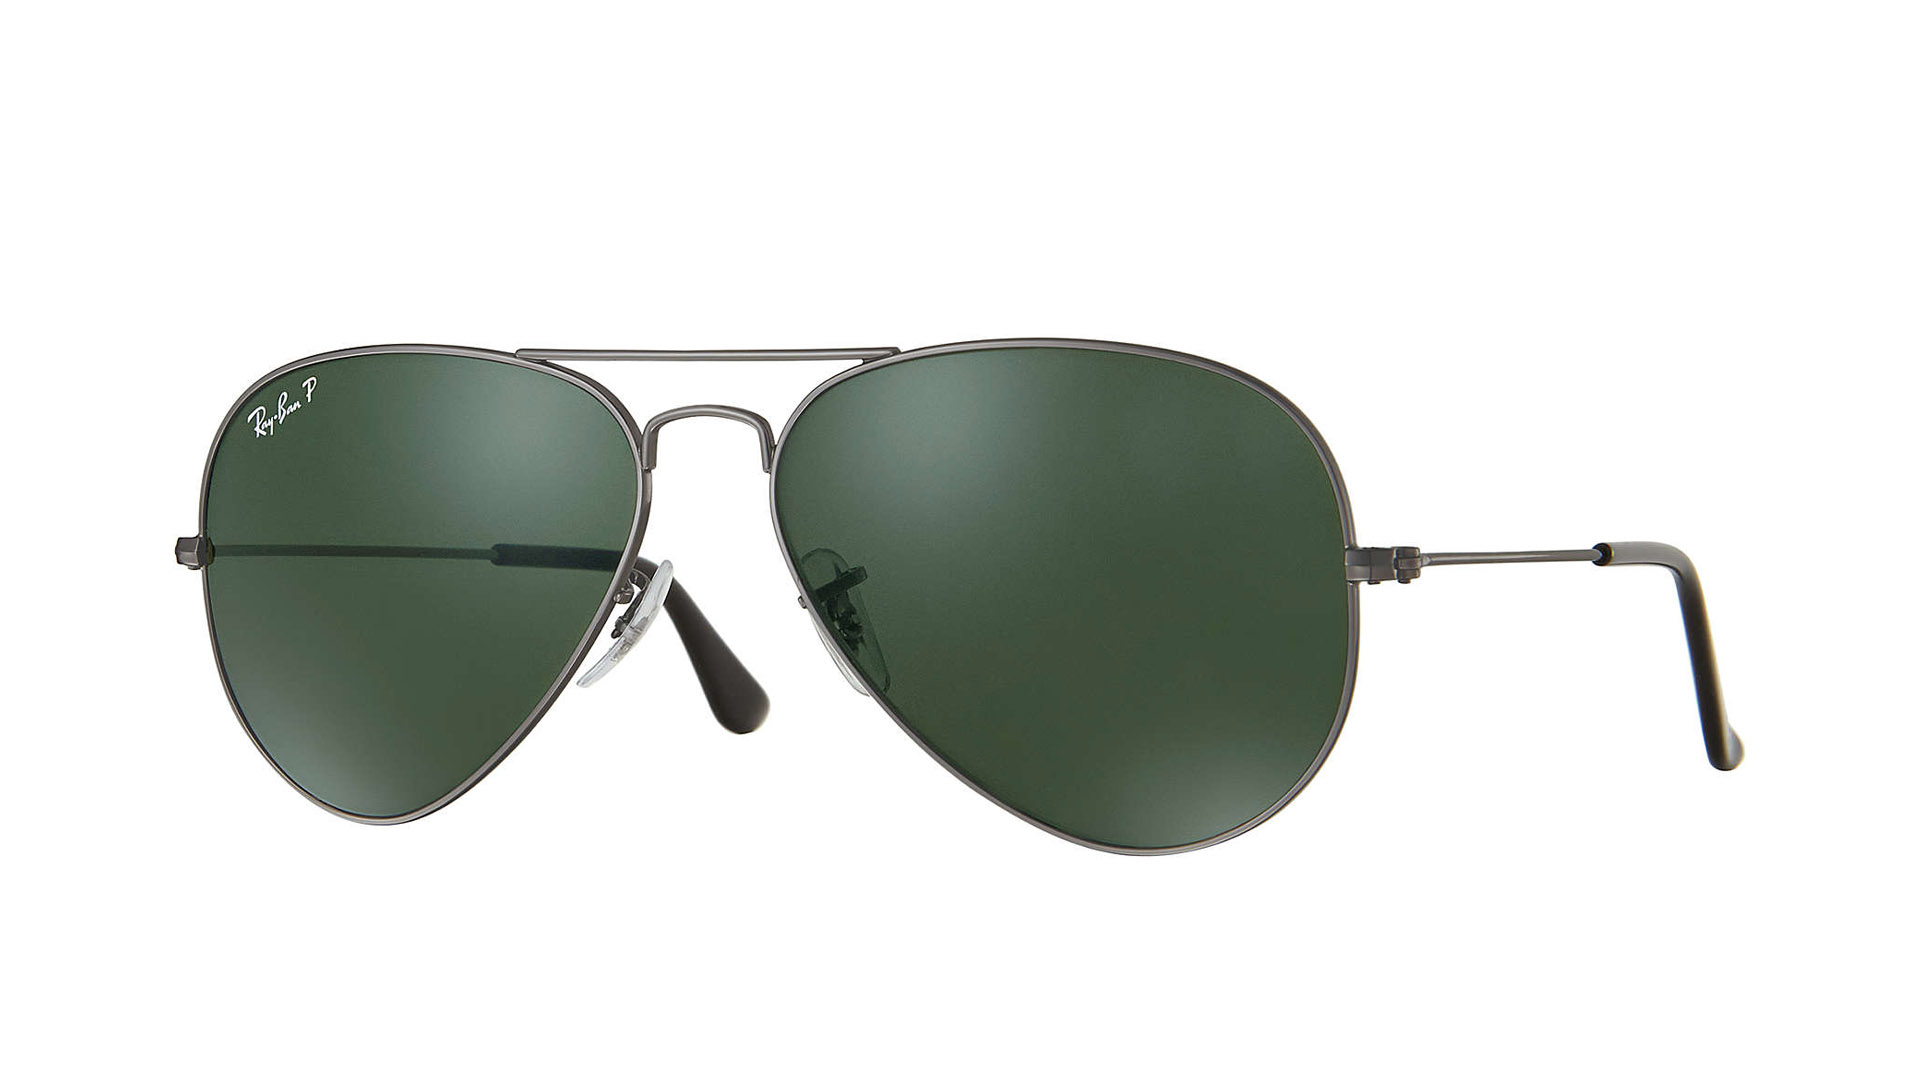 Purchase Aviator Classic Sunglasses Through Lemoney